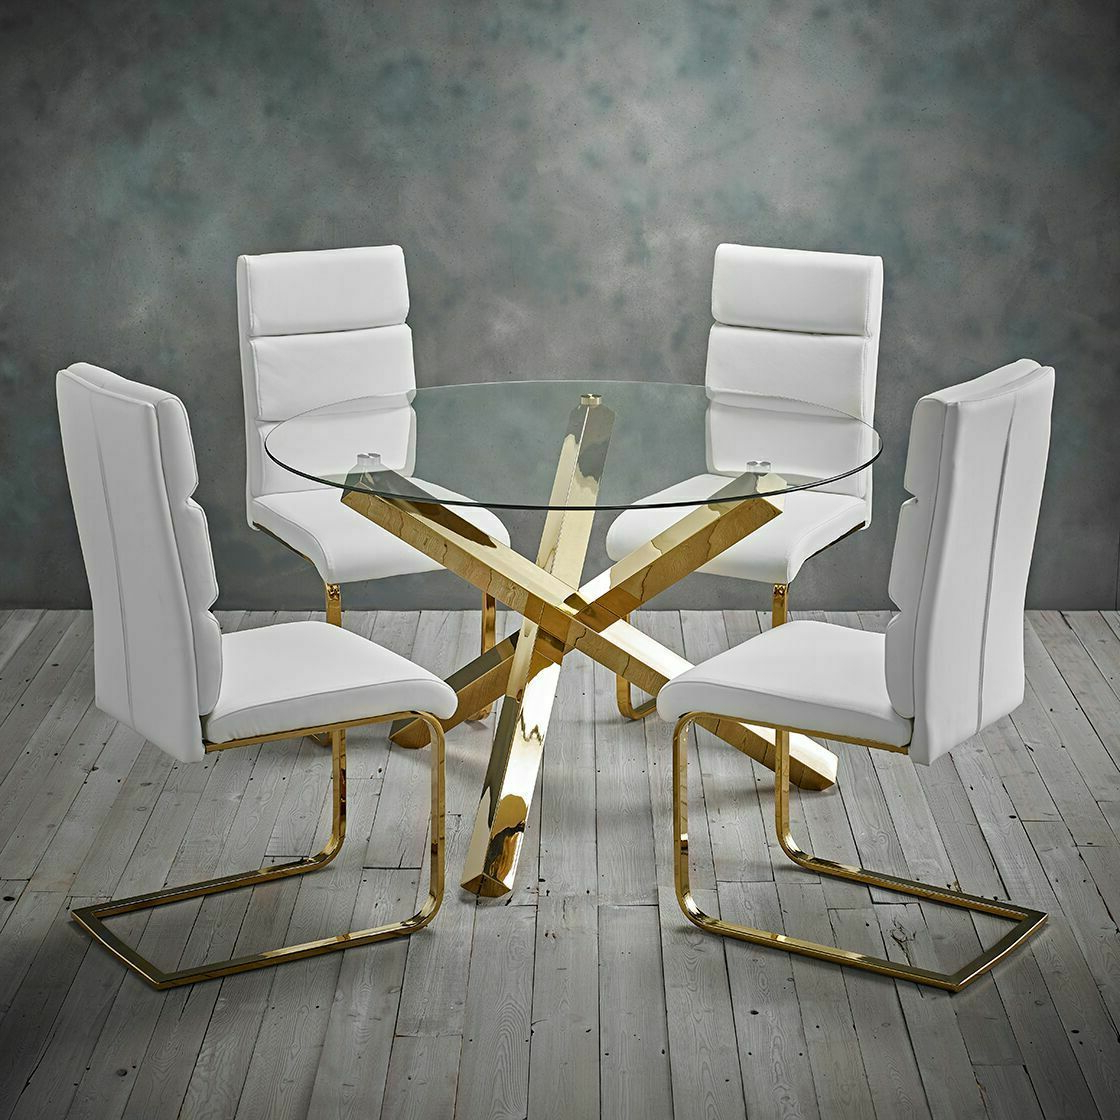 Modern Polished Gold Round Clear Glass Dining Table With Well Liked Modern Gold Dining Tables With Clear Glass (Gallery 14 of 30)